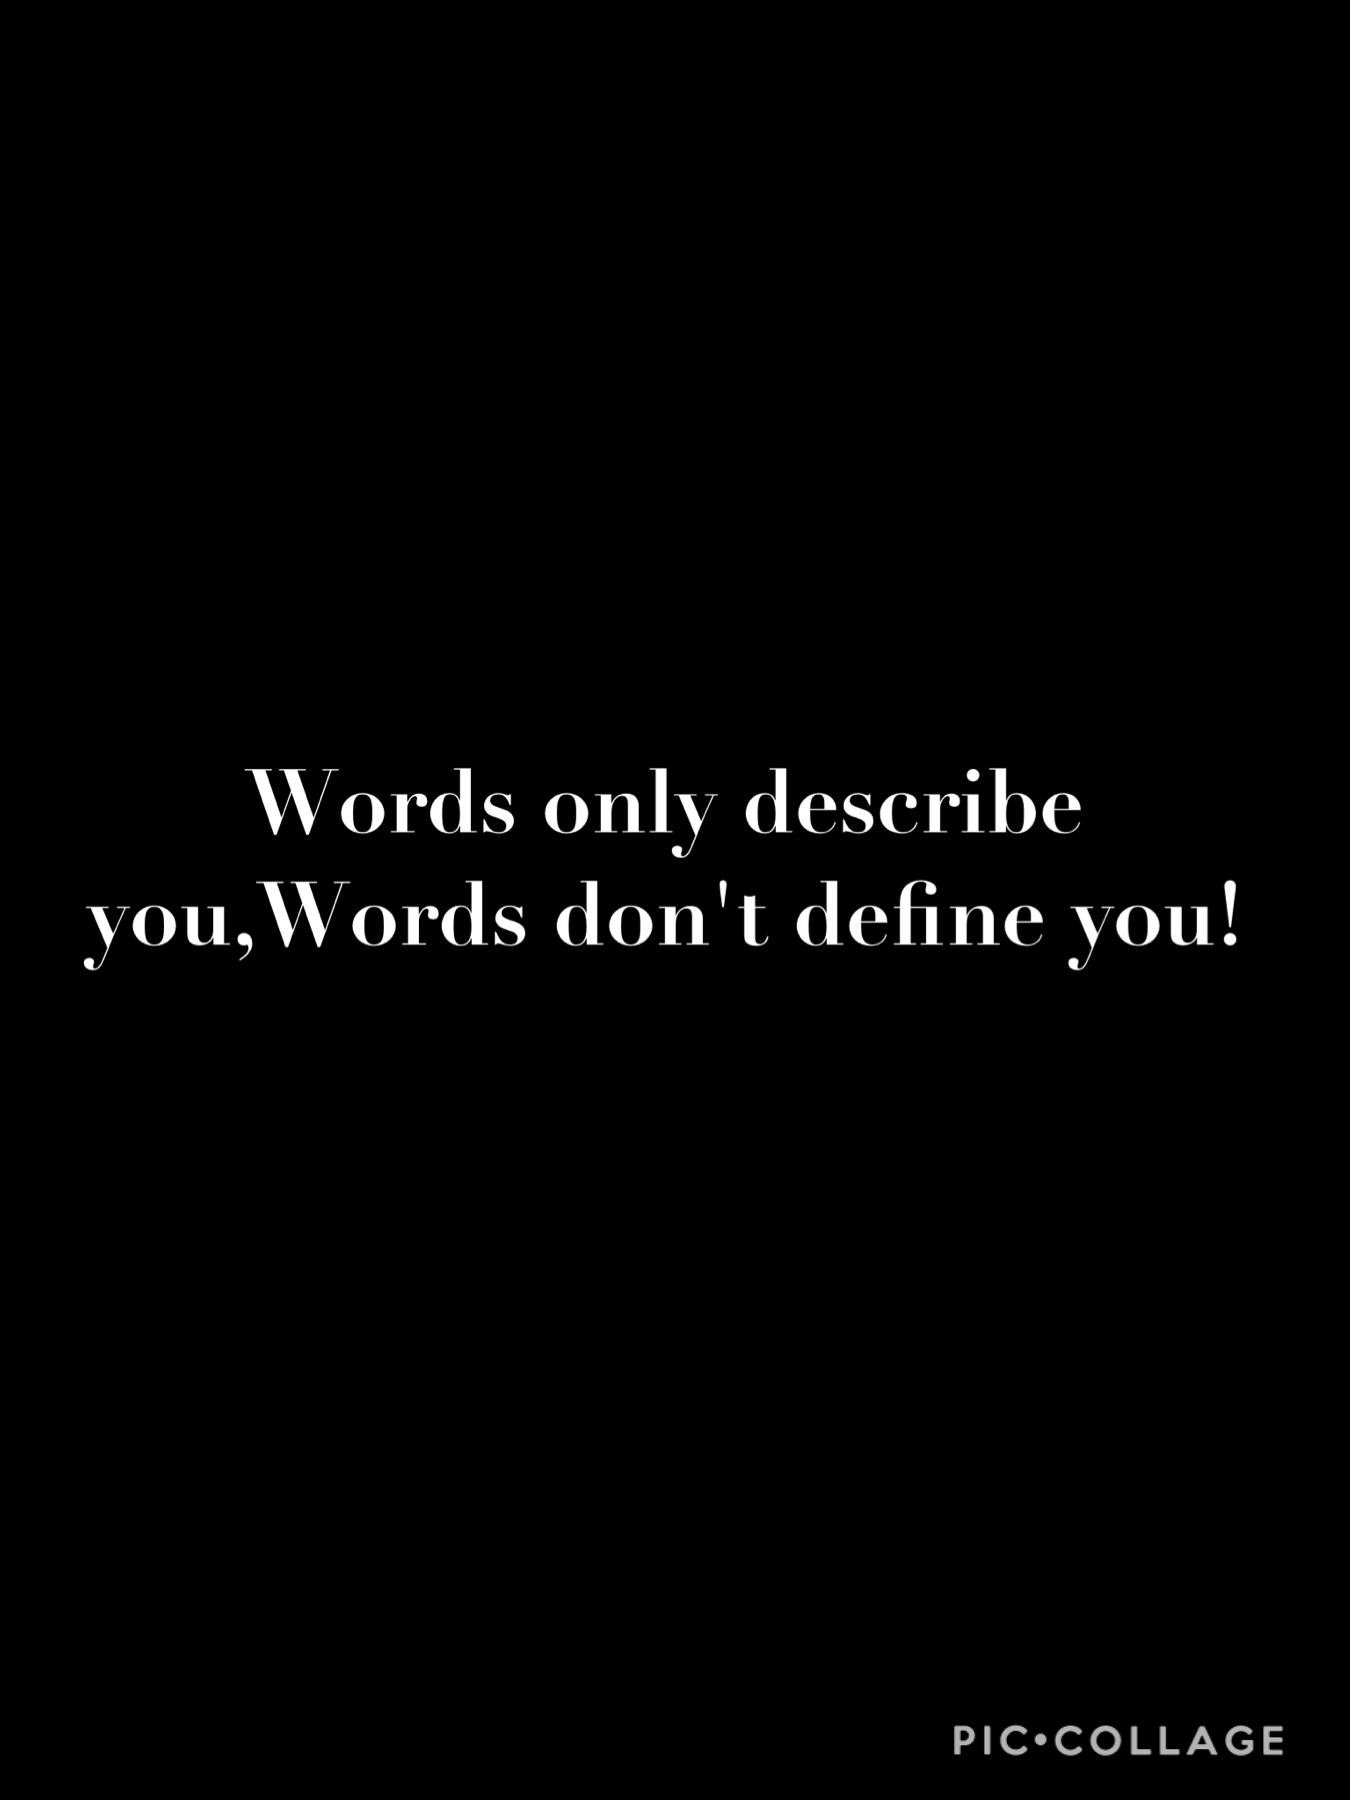 Don't get hurt when people call you bad words that have nothing to do with you! 05/01/21